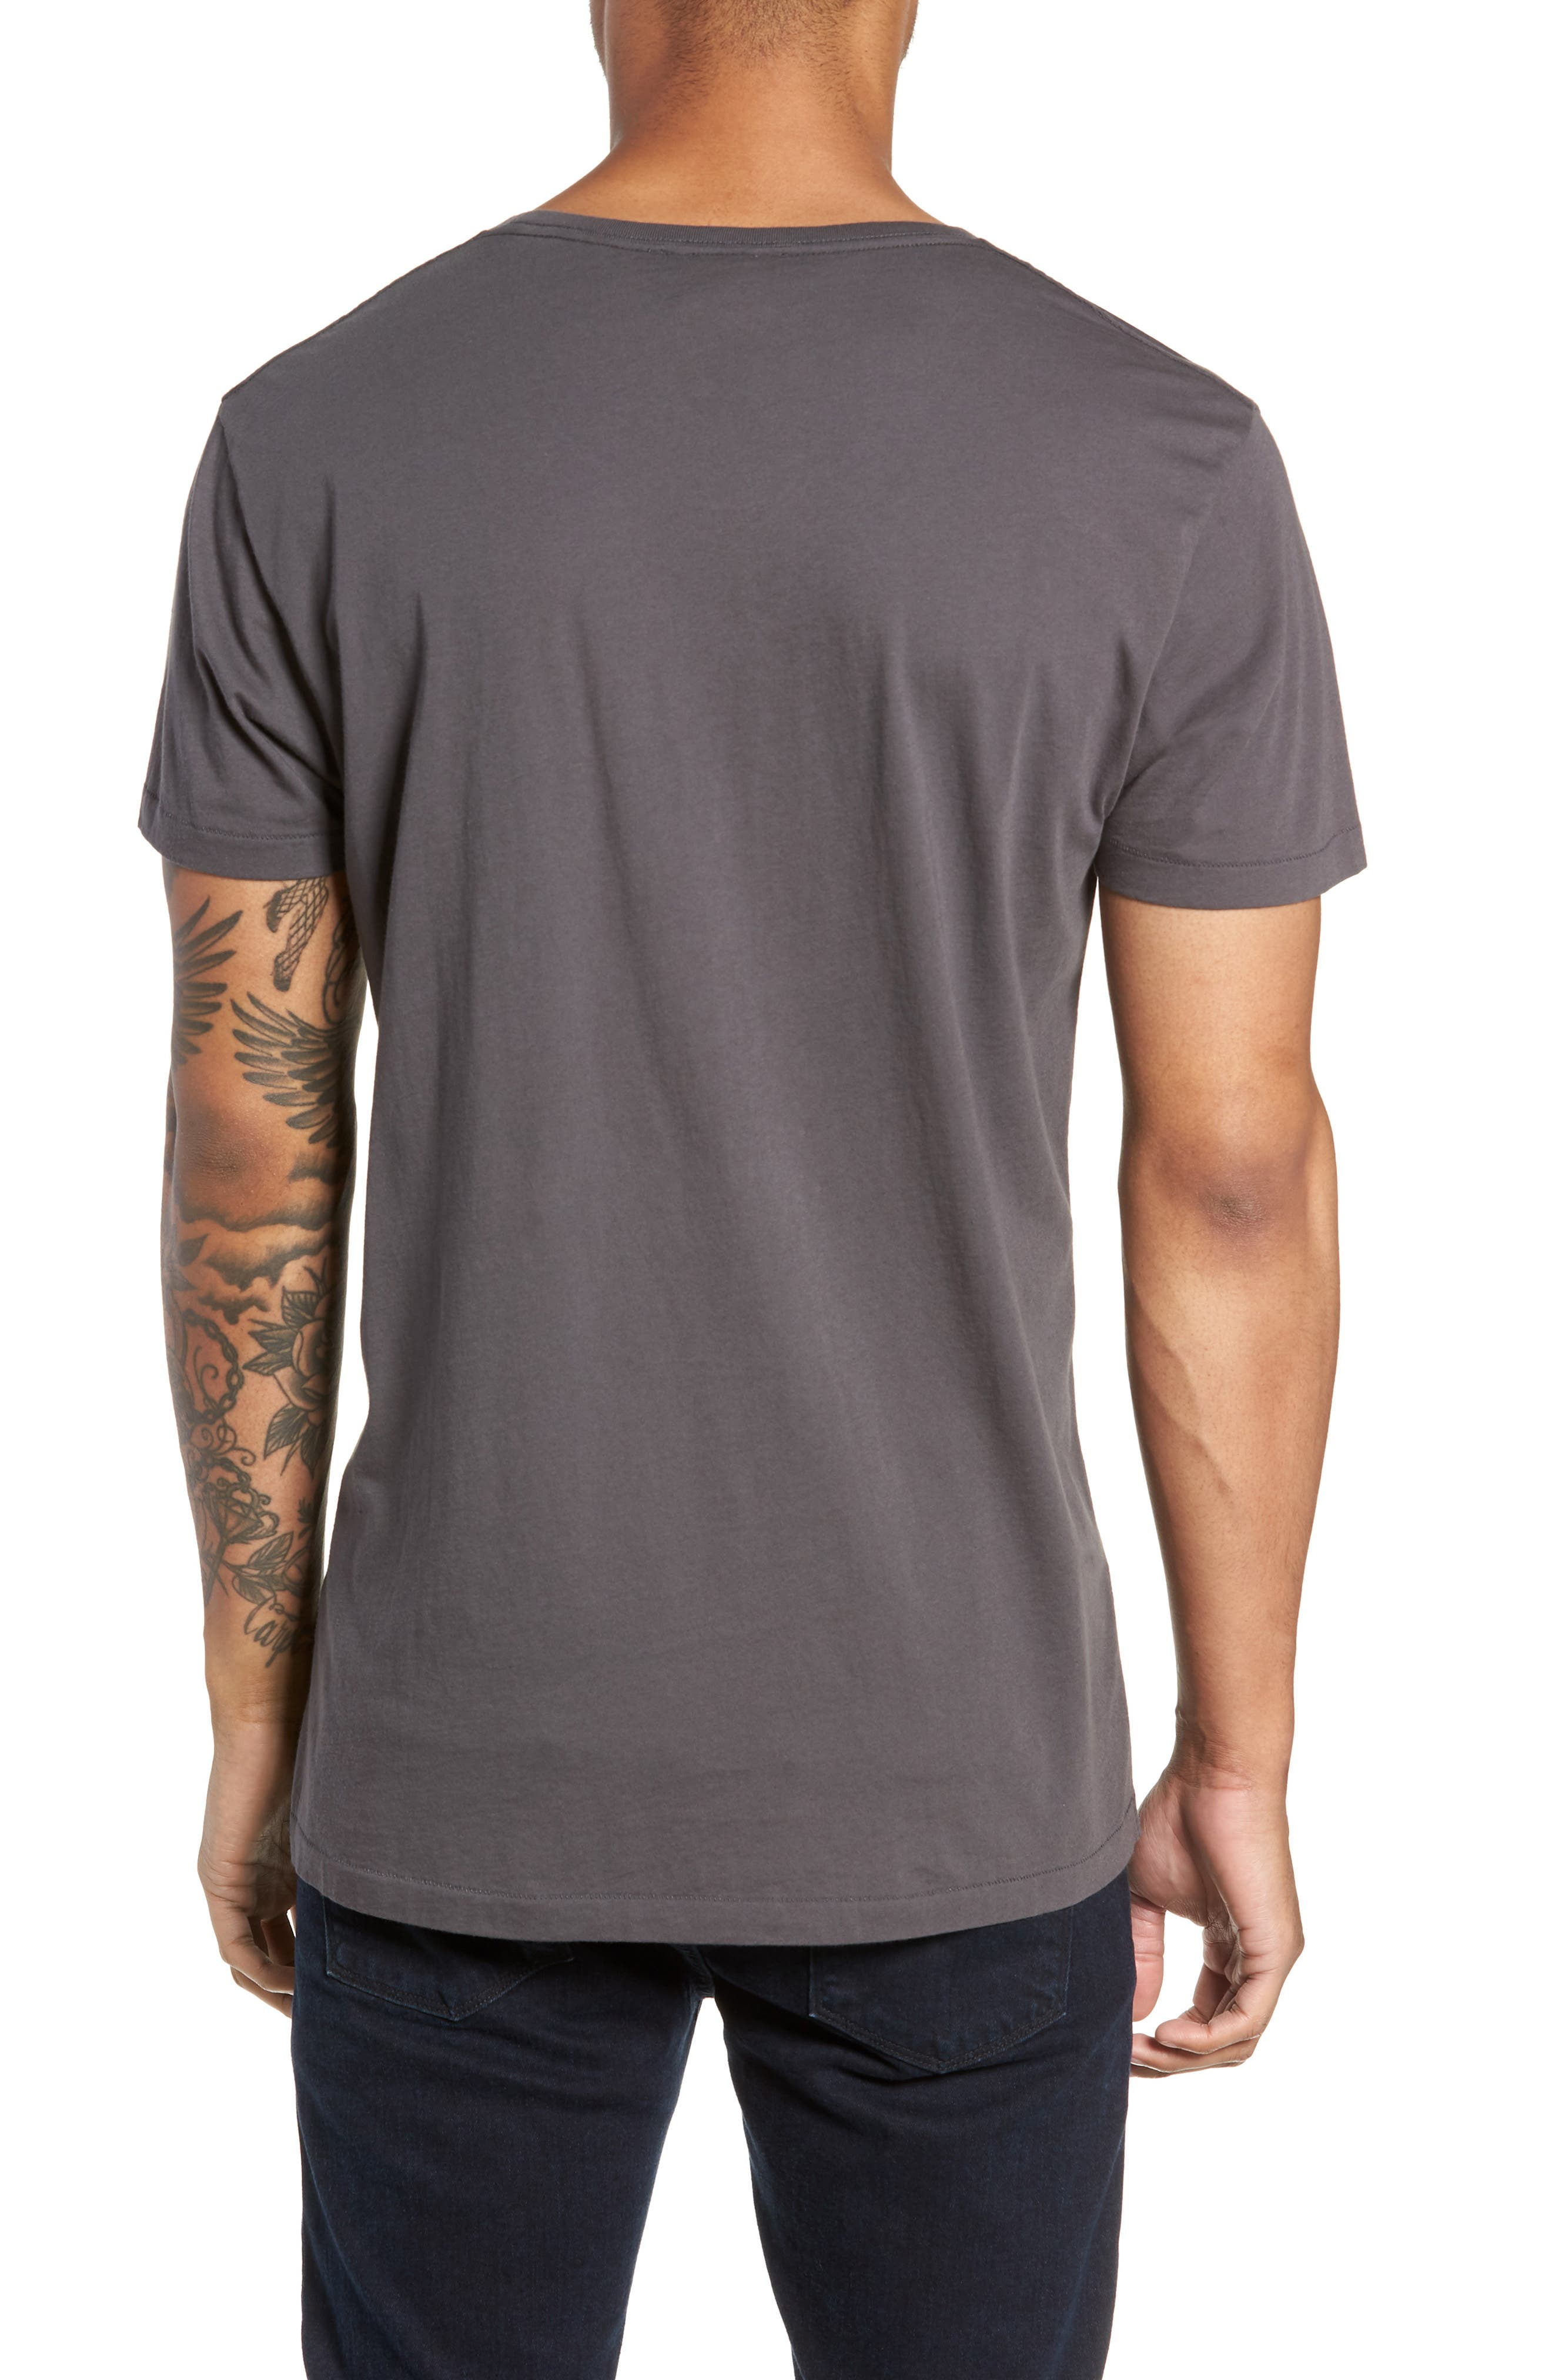 Alias Relaxed Fit T-Shirt,                             Alternate thumbnail 2, color,                             DARK ANTRACITE